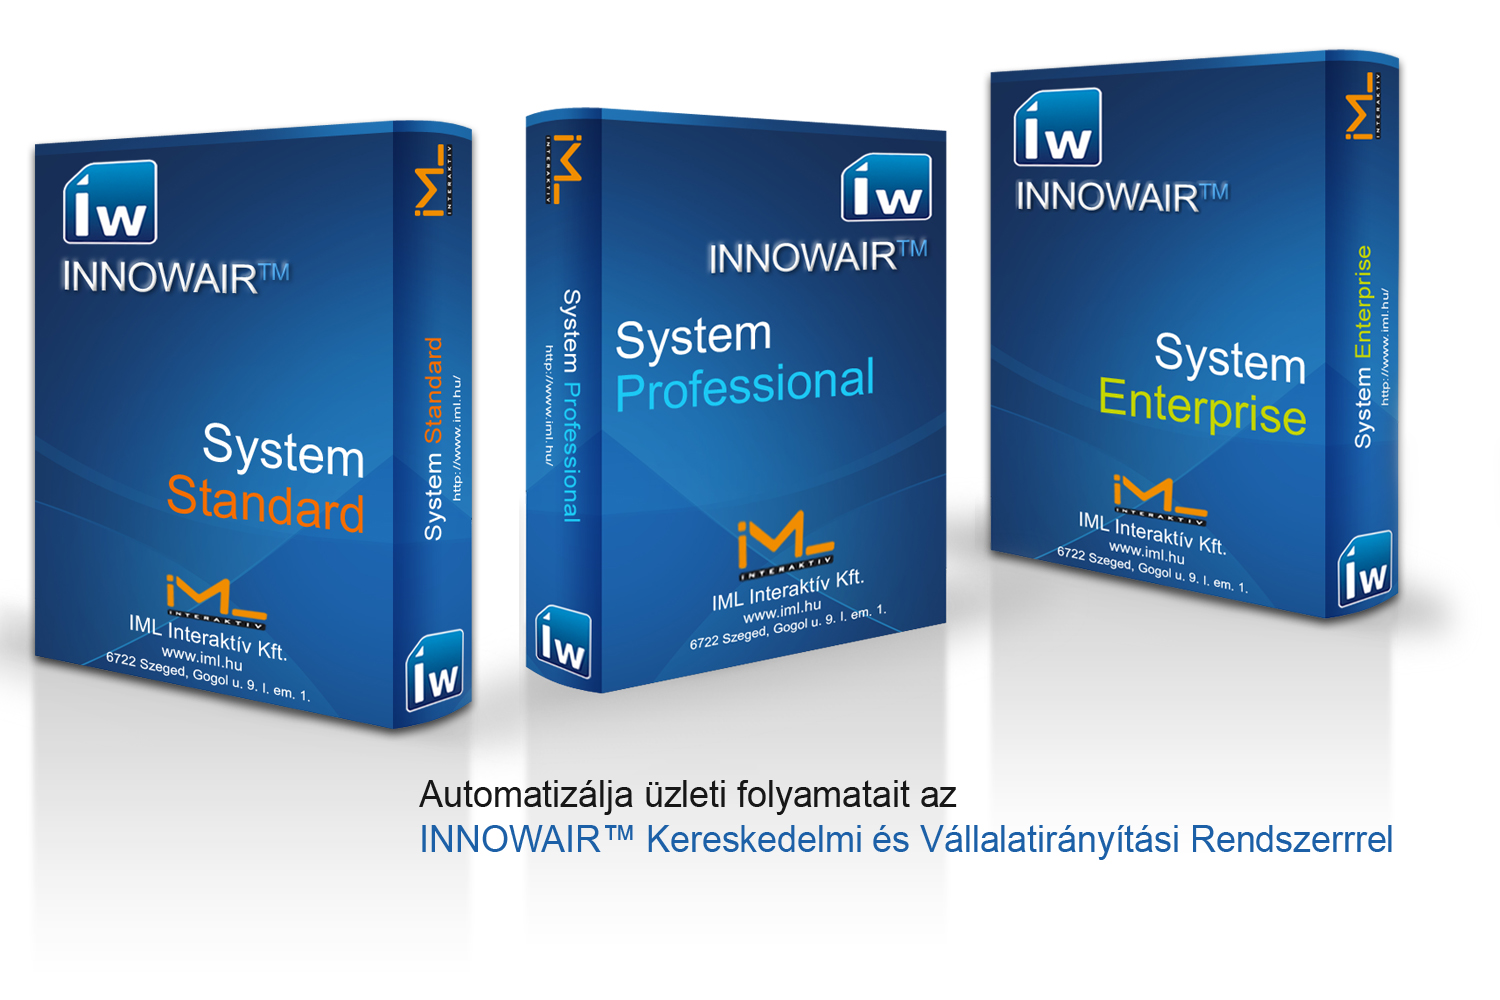 INNOWAIR Rendszer